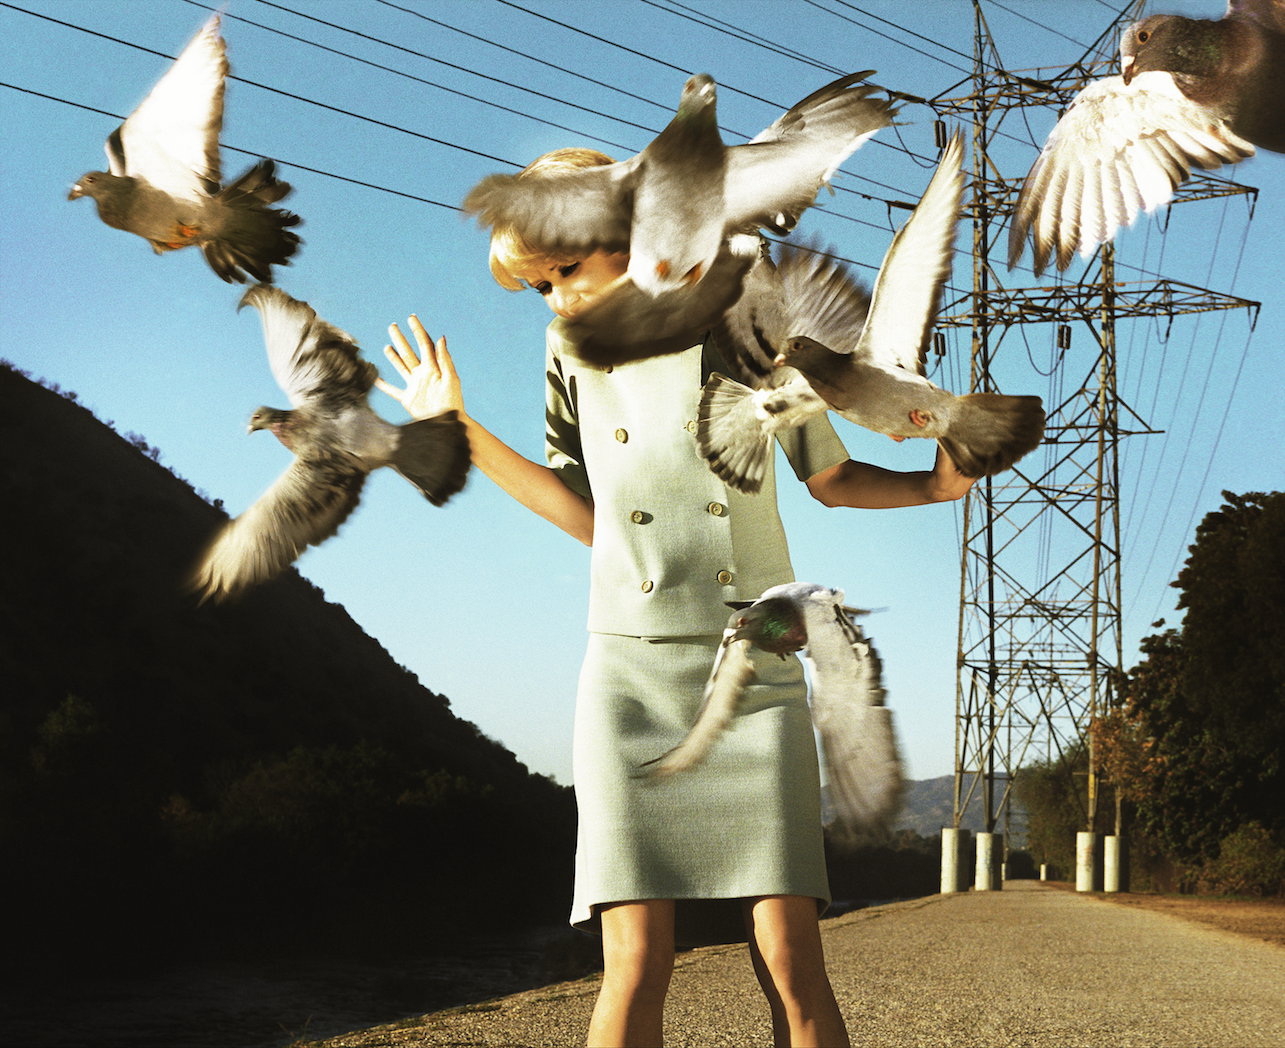 Alex Prager, 'The Big Valley: Eve', 2008, © Alex Prager Studio and Lehmann Maupin, New York and Hong Kong.